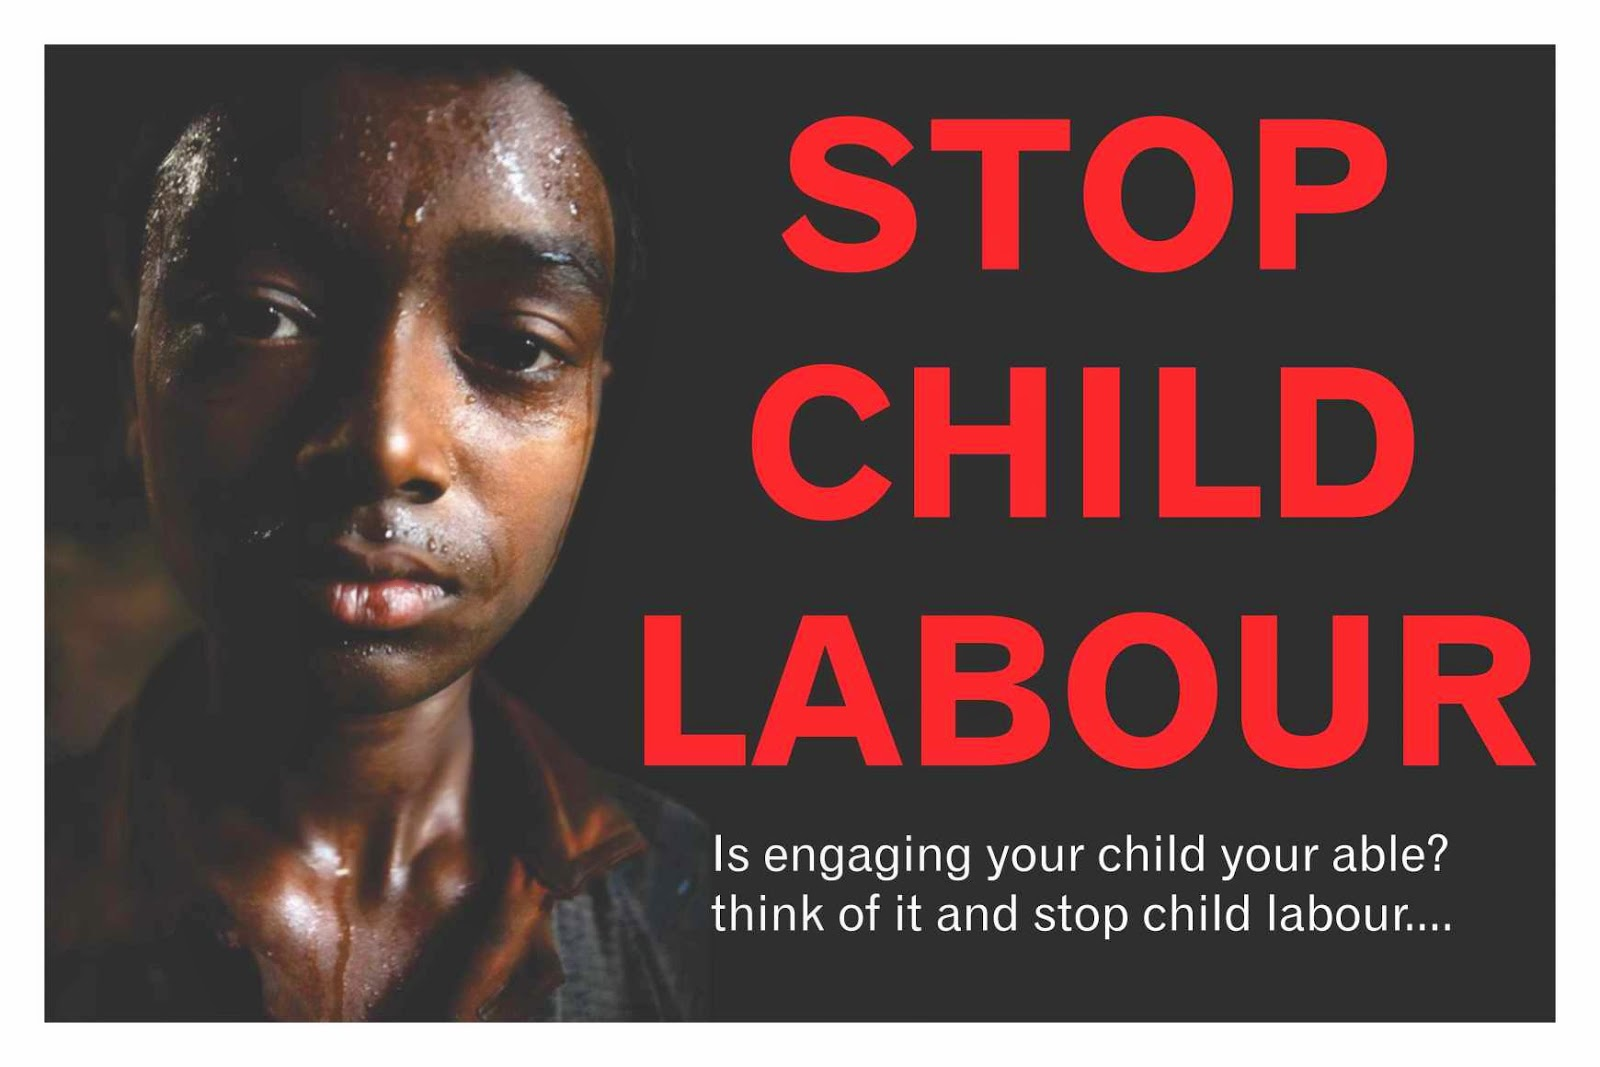 child labour begone involved will eventually sp wider and more up the rakes of political power i have many more social actions coming along this social justice journey